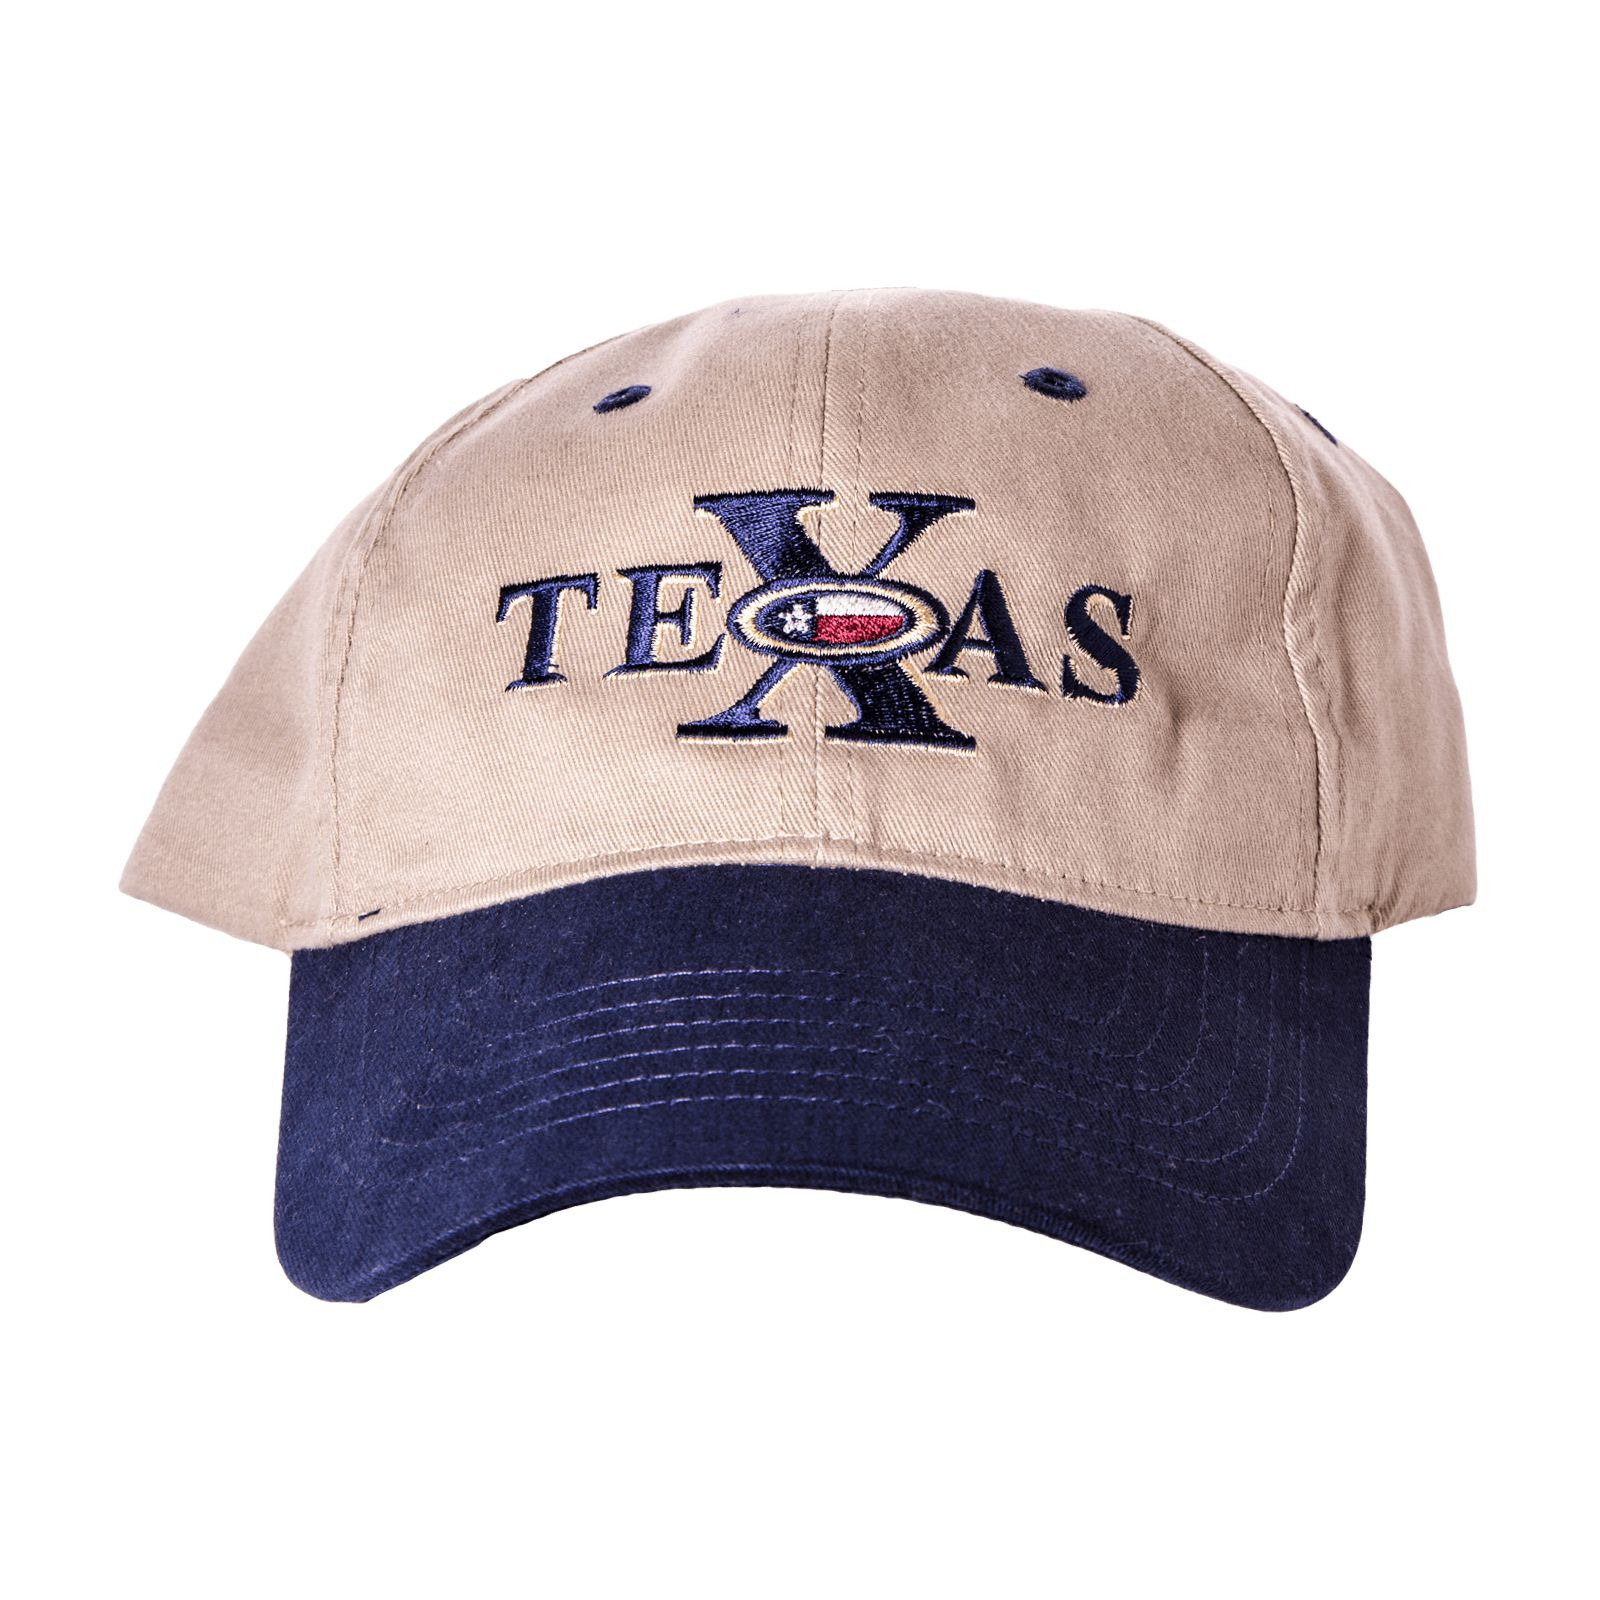 Big X in Texas Hat